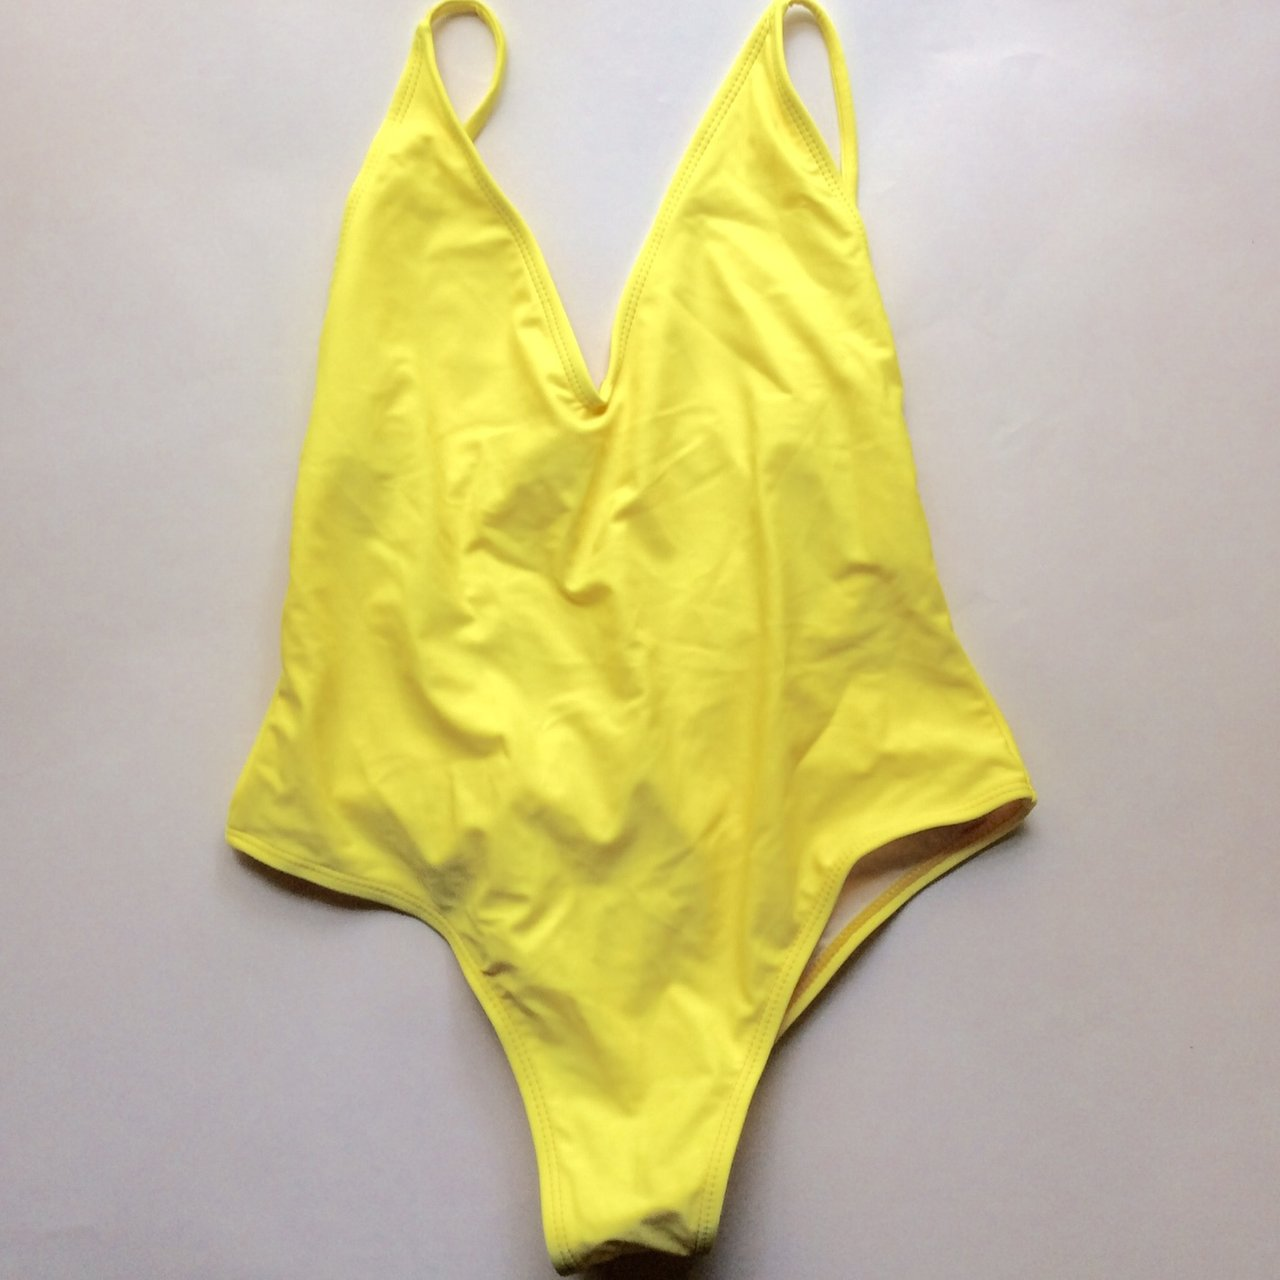 b12e7fee61 Forever 21 Red One Piece Bathing Suit - Size Medium. Never - Depop